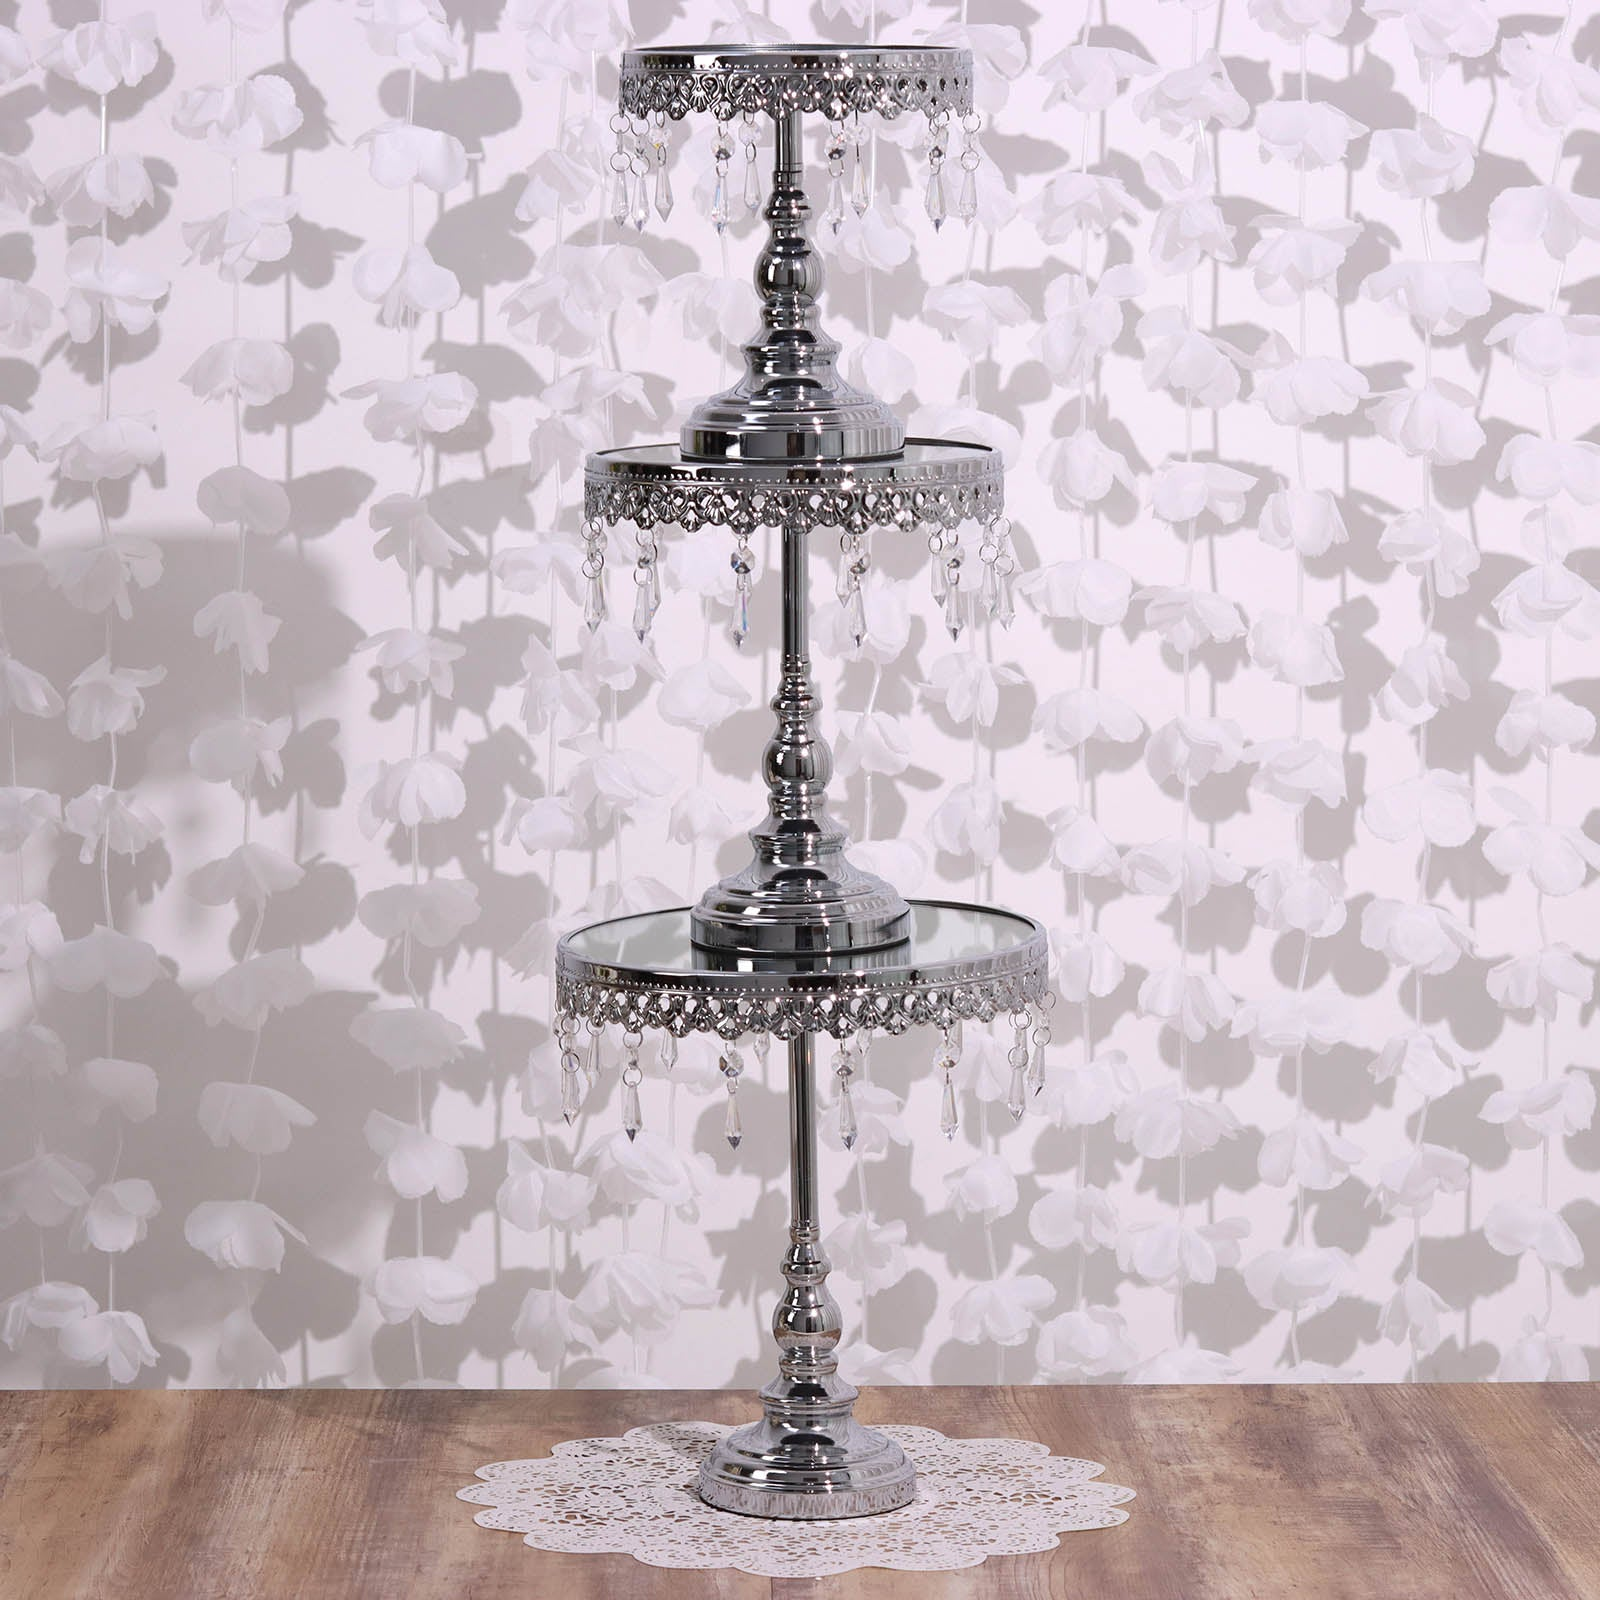 Silver Round Metallic Modern Cup Cake Riser Stand with Hanging ...